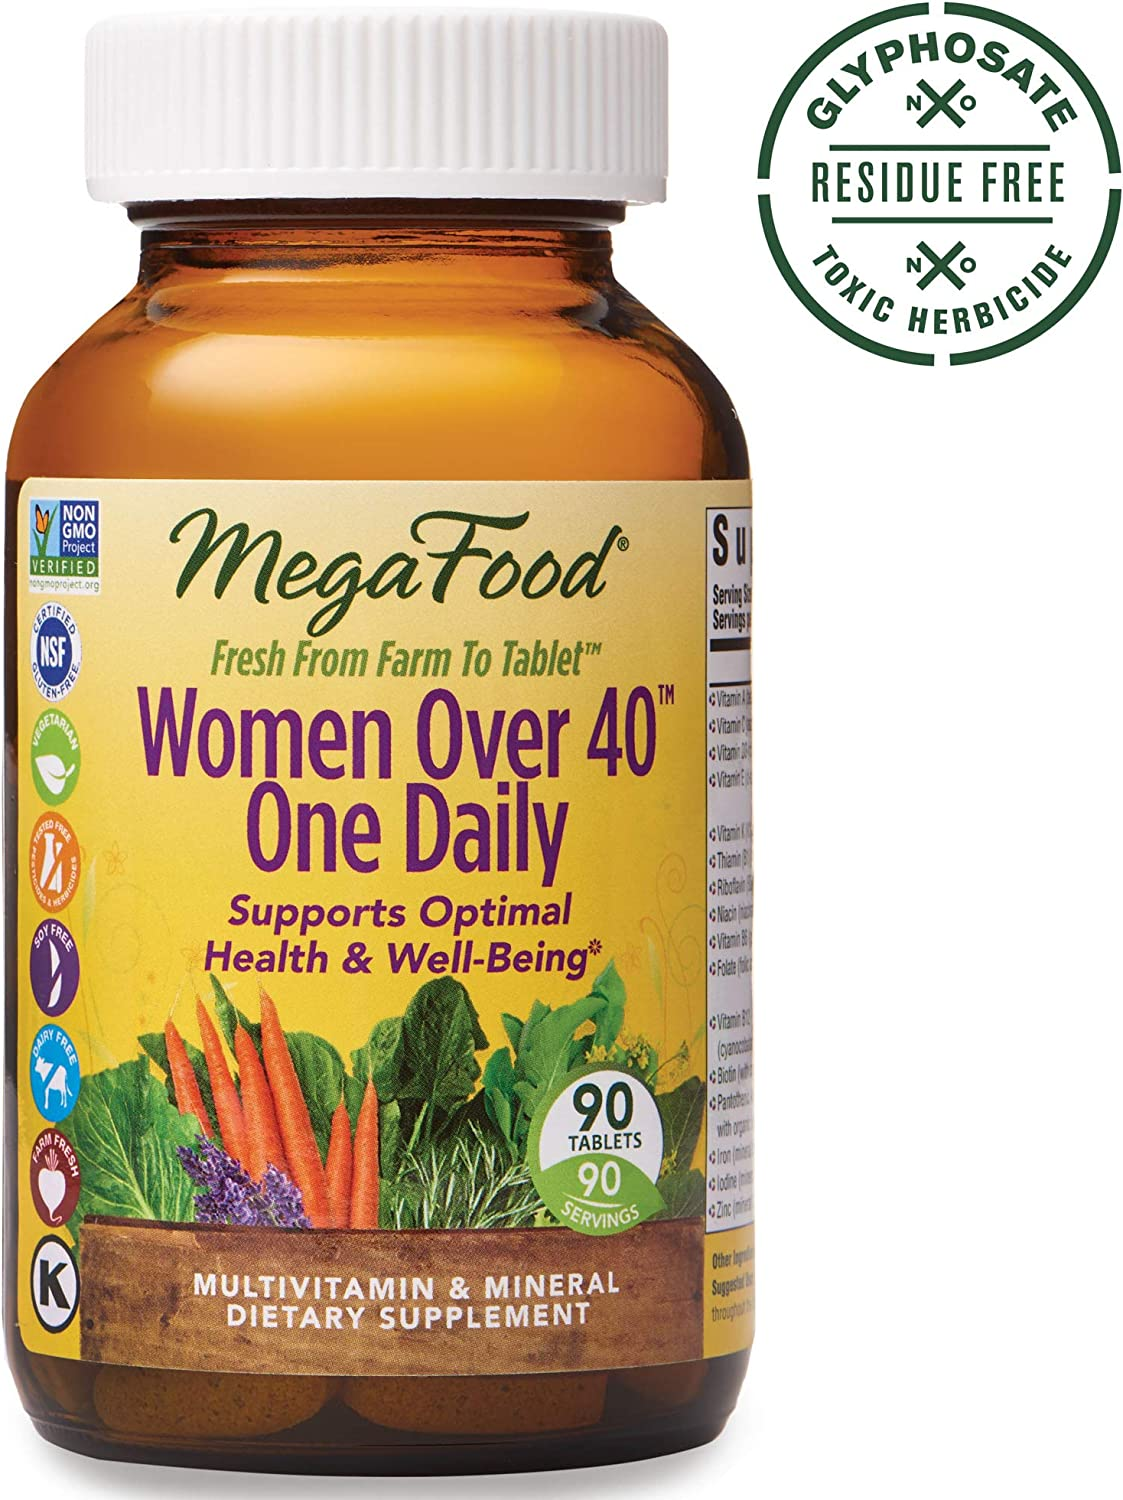 MegaFood, Women Over 40 One Daily, Daily Multivitamin and Mineral Dietary Supplement with Vitamins C, D, Folate, Biotin and Iron, Non-GMO, Vegetarian, 90 Tablets (90 Servings) (FFP)